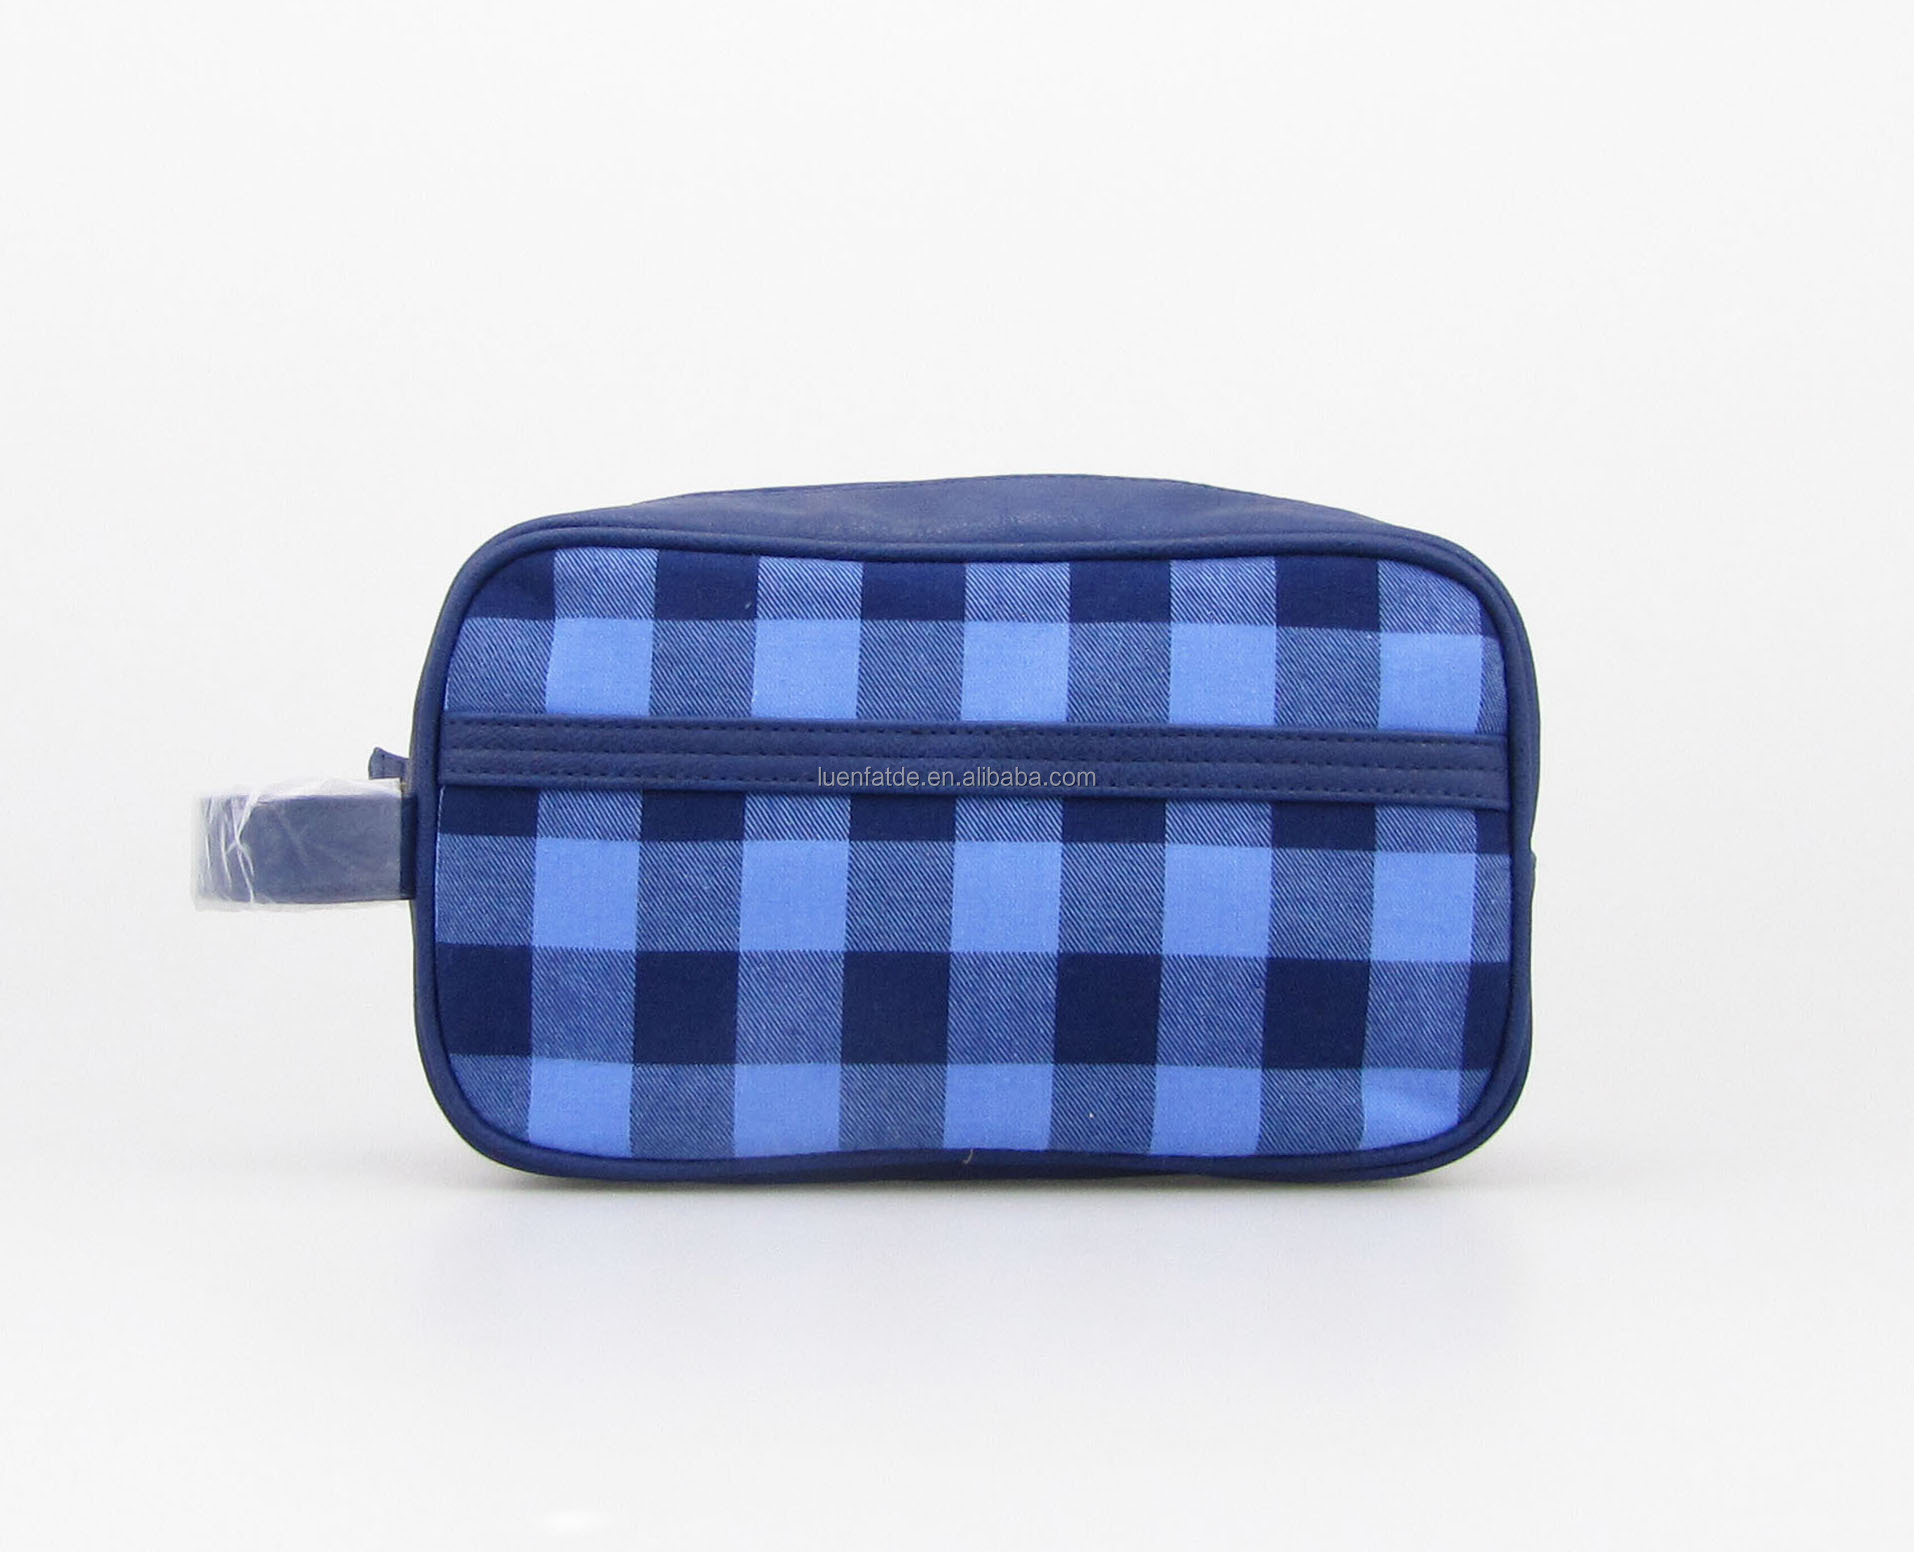 Checkered cotton Mens Cosmetic Bag Travel Makeup Bag